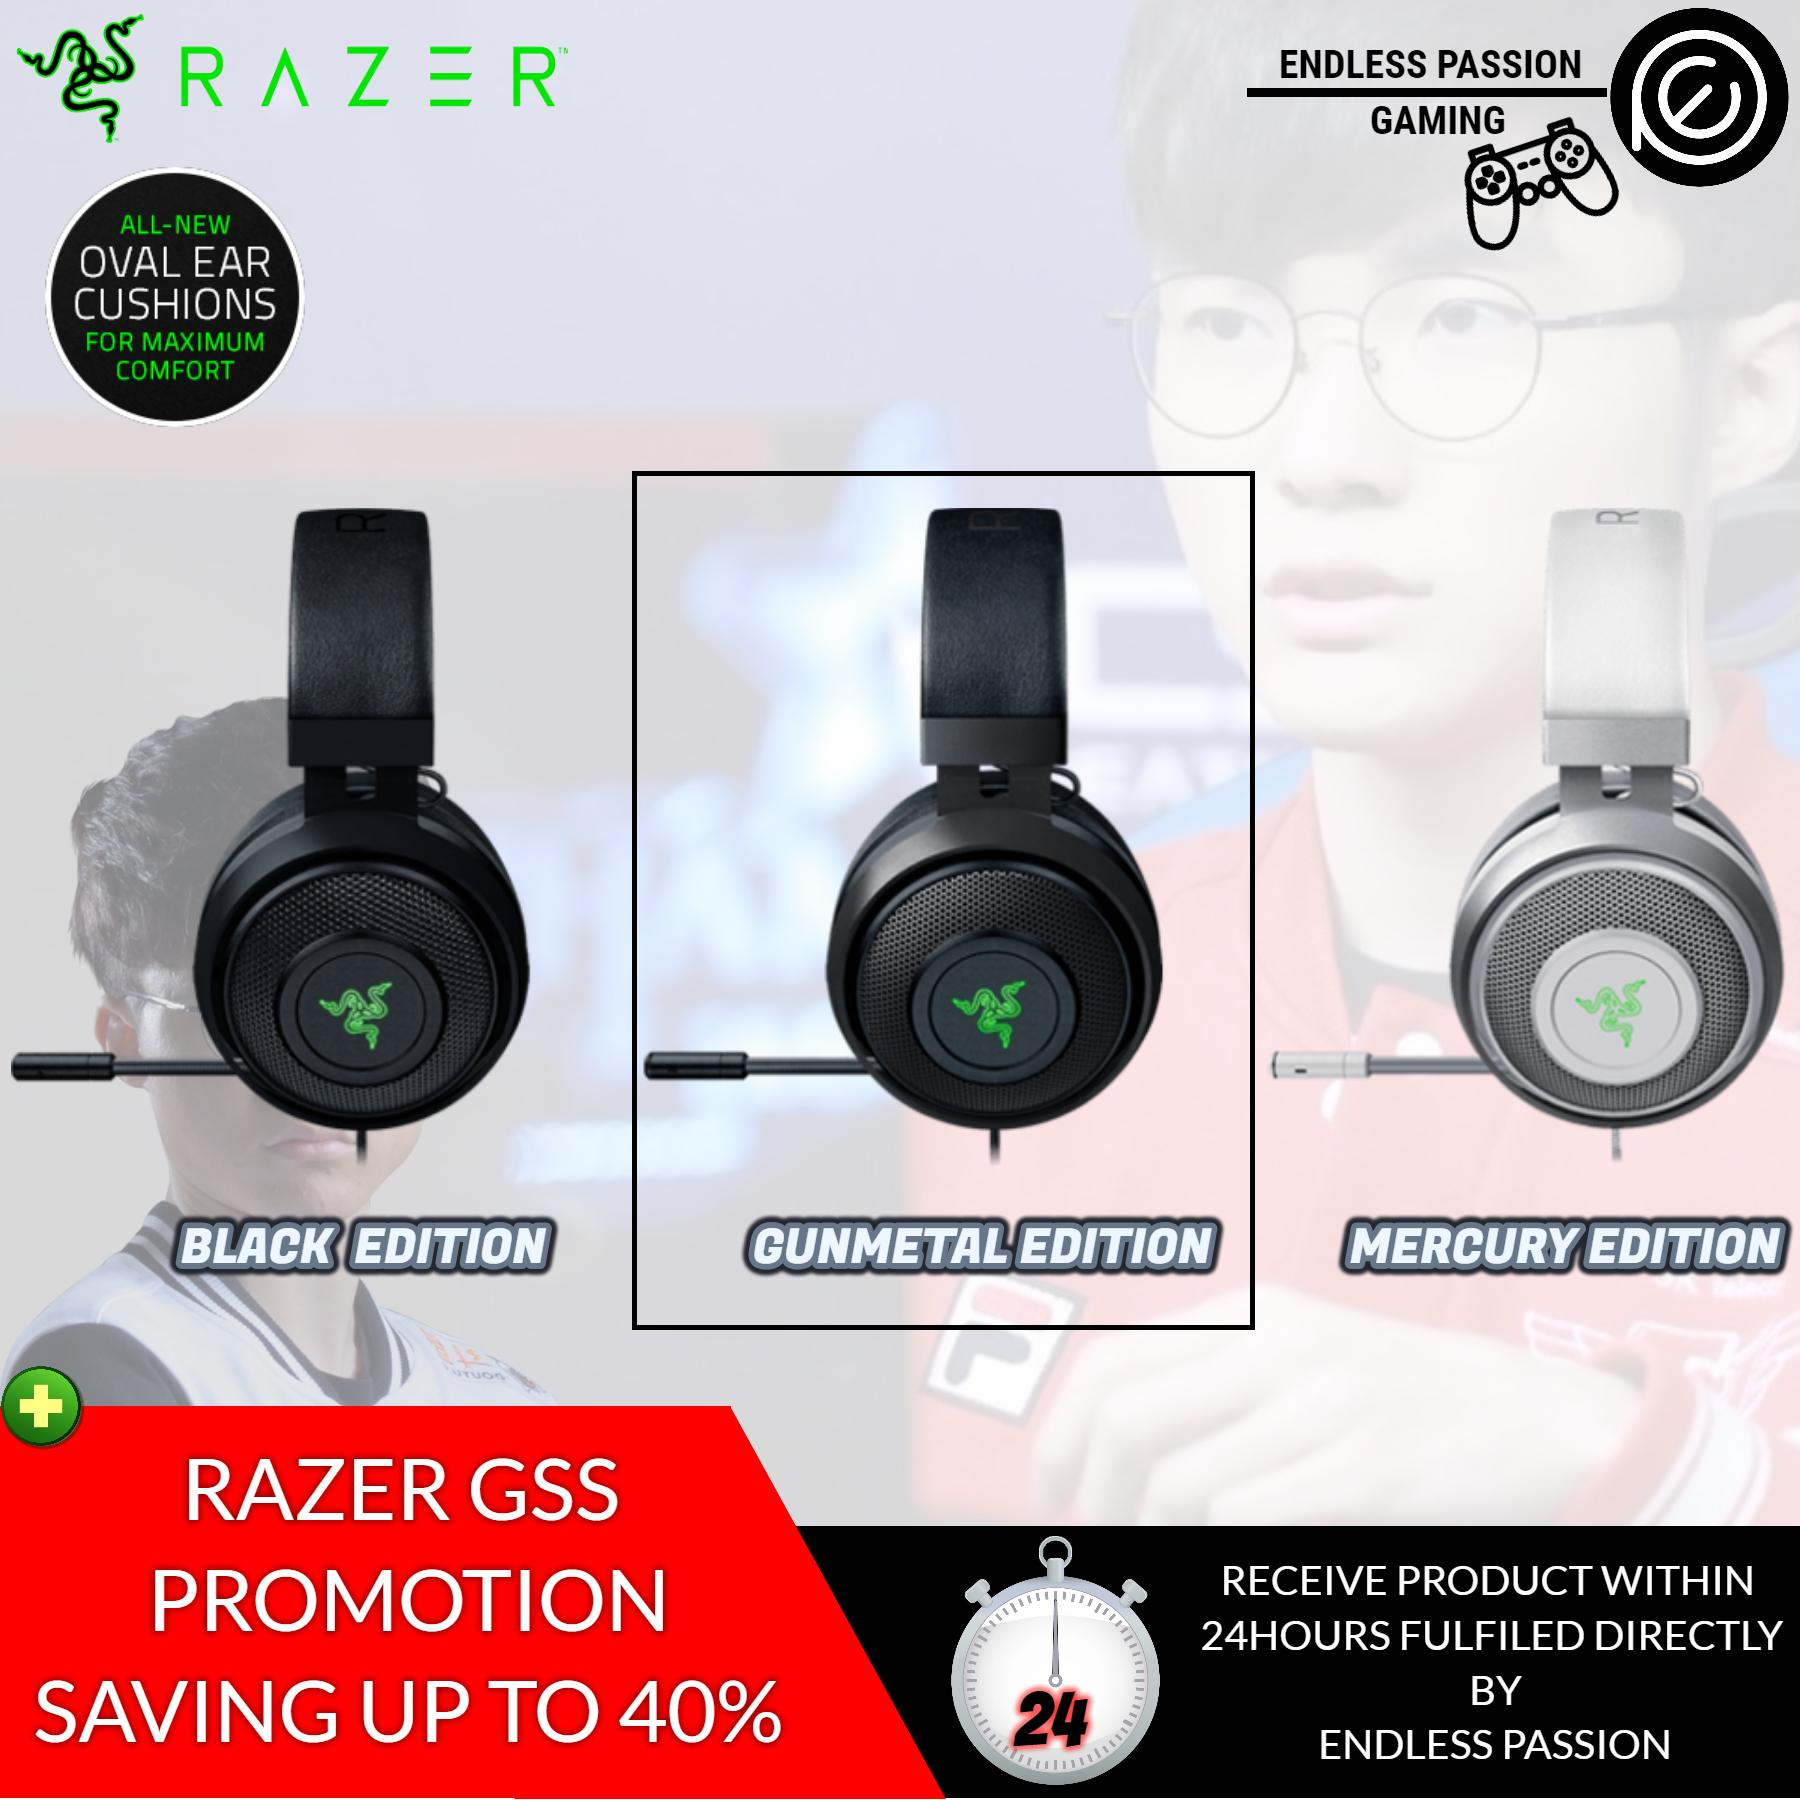 Razer Kraken 7.1 Chroma V2 USB Gaming Headset - 7.1 Surround Sound with Retractable Digital Microphone and Chroma Lighting - Oval Ear Cushions